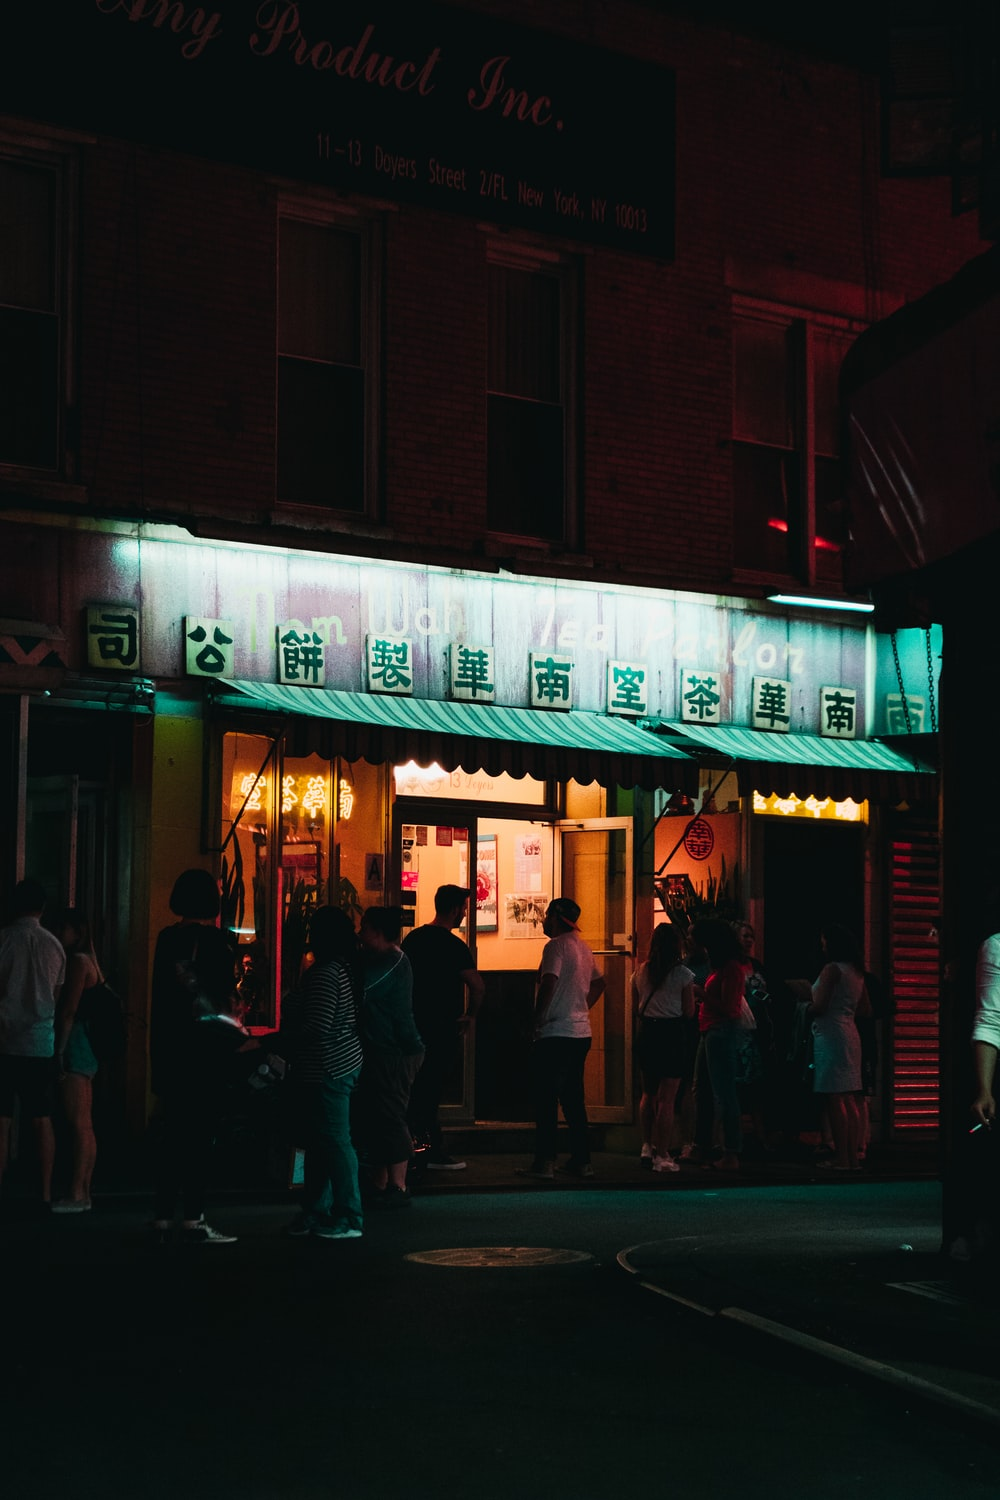 people standing in front of store during nighttime